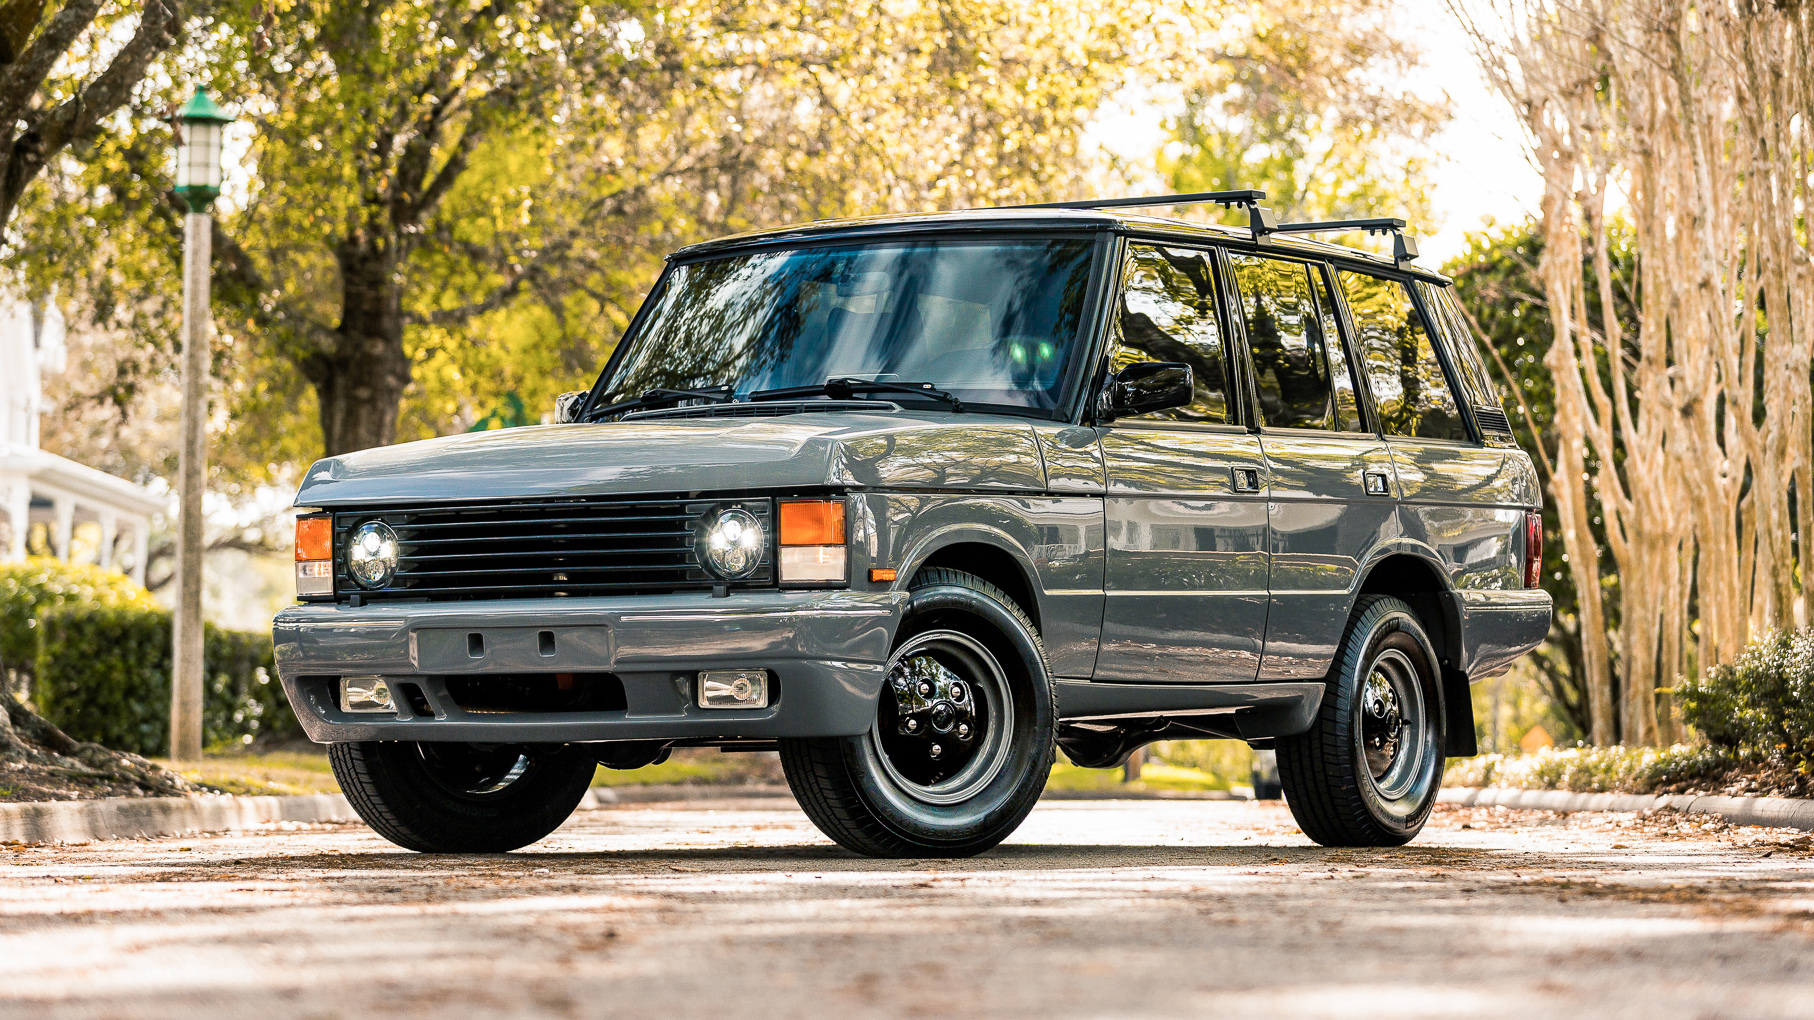 Top Gear On Twitter What Do You Think Of These Restomod V8 Range Rovers E C D Automotive Design Plugs Chevrolet Engines Into Classic Rangies Https T Co V3dlhaaccs Https T Co Bkgglp3bb7